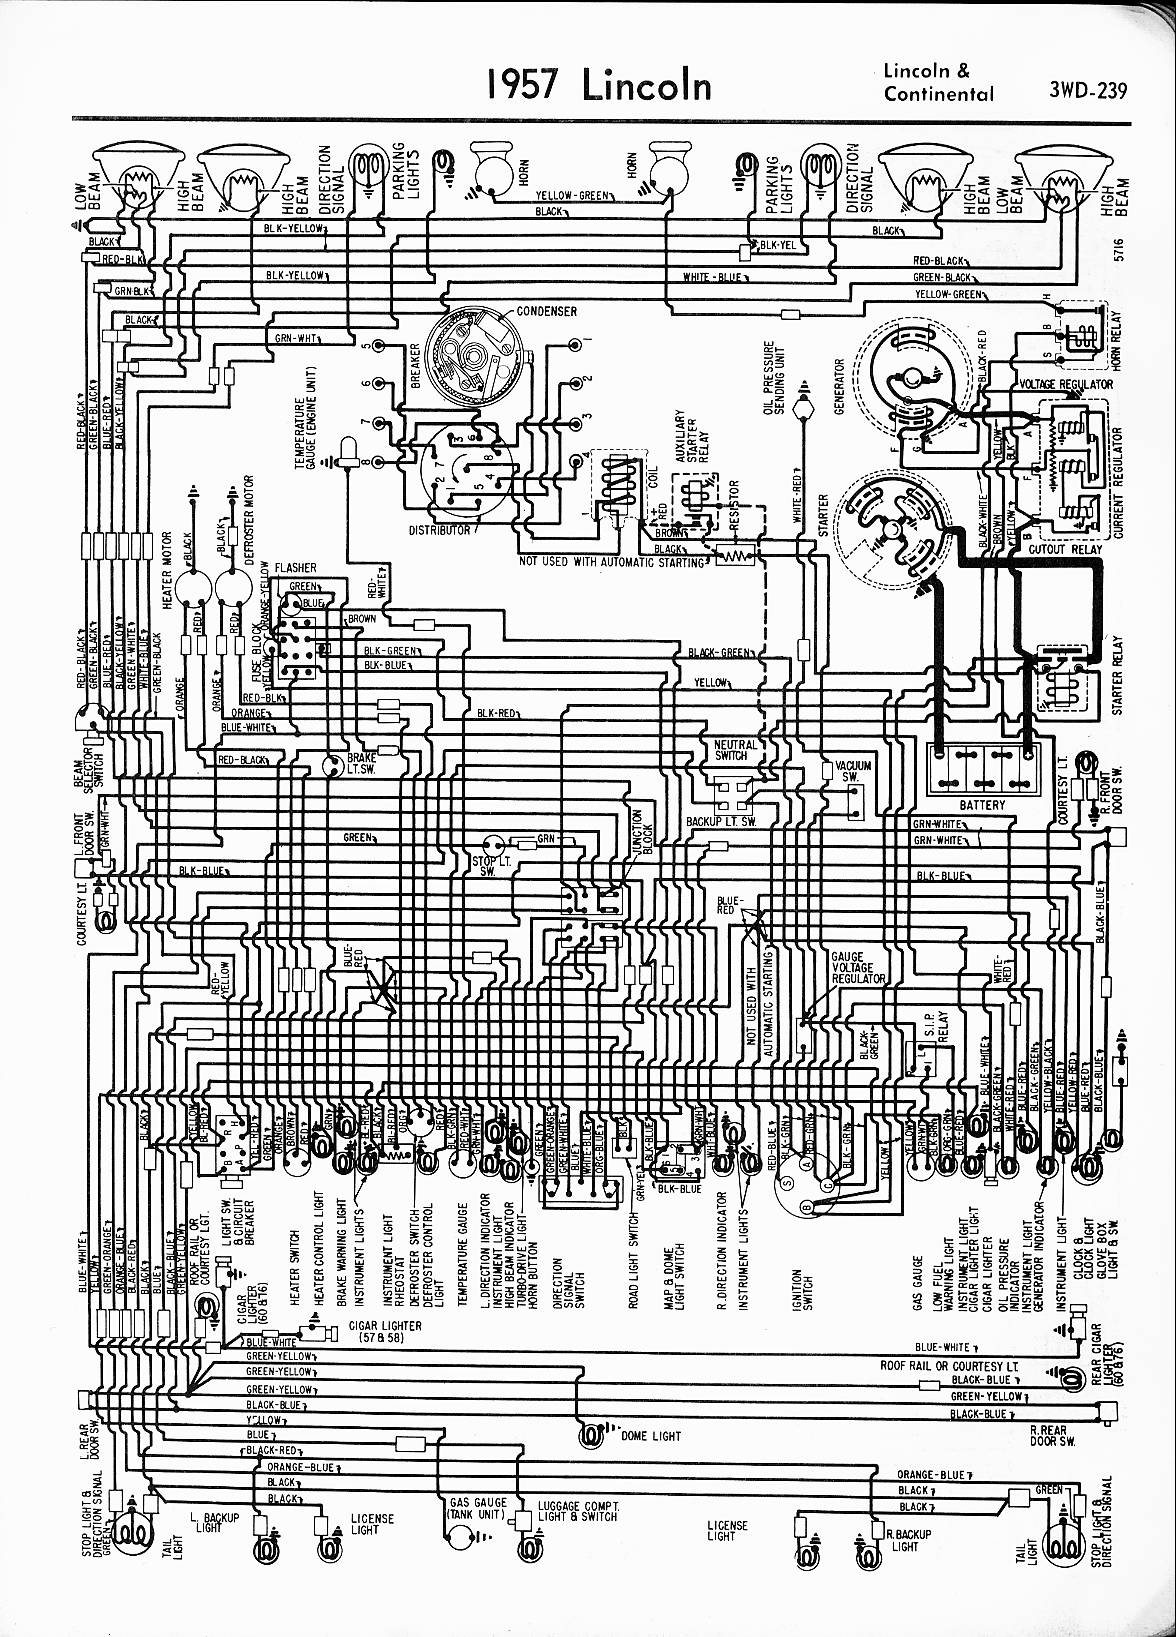 MWireLin_Lin57_z3wd 239z_001 lincoln wiring diagrams 1957 1965 lincoln electric wiring diagram at bakdesigns.co